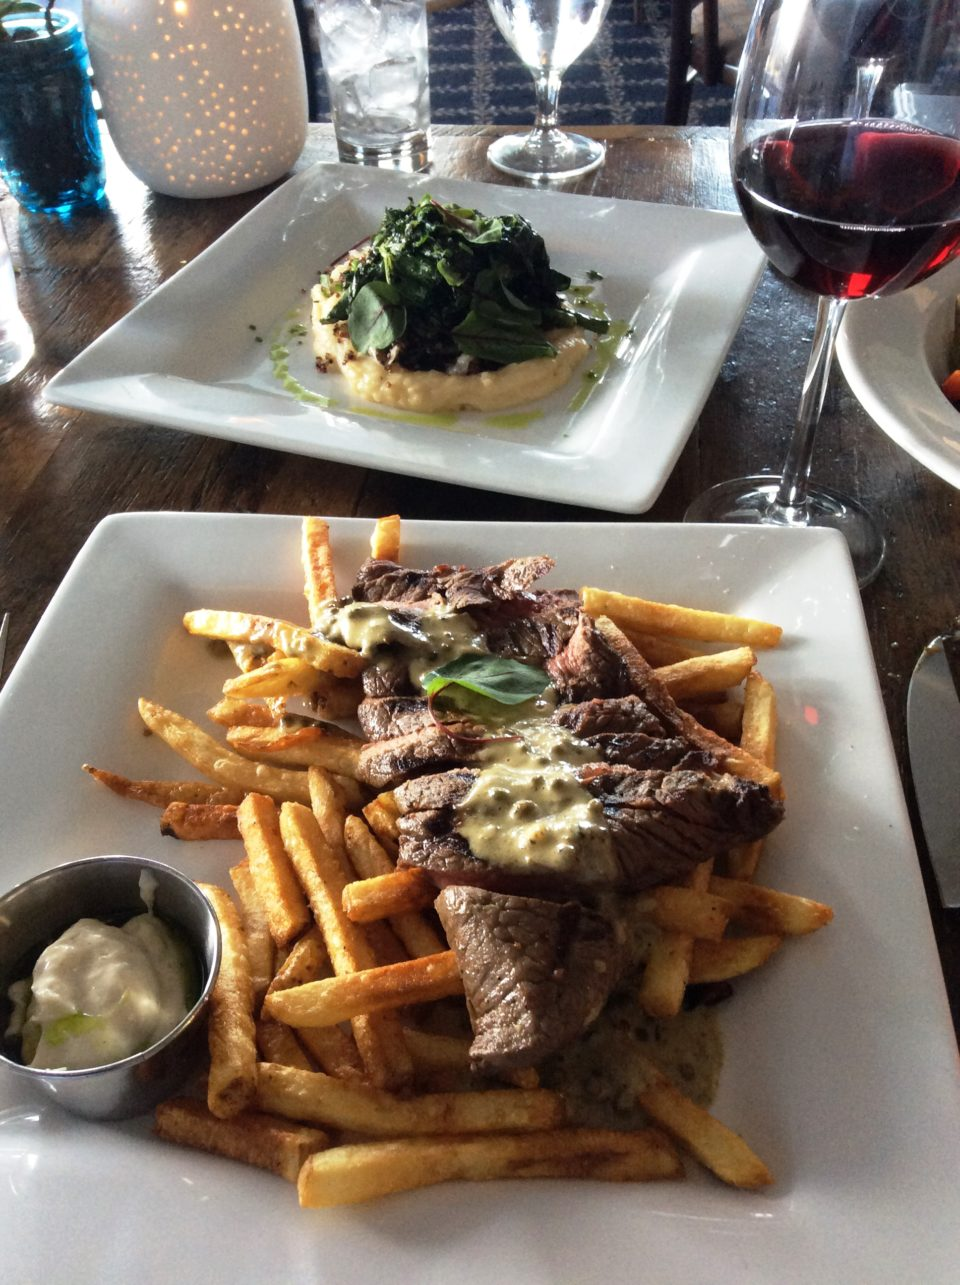 Emerson Inn by the Sea : perfectly cooked Steak Frites with accompanying vegetable medley at Pigeon Cove Tavern restaurant